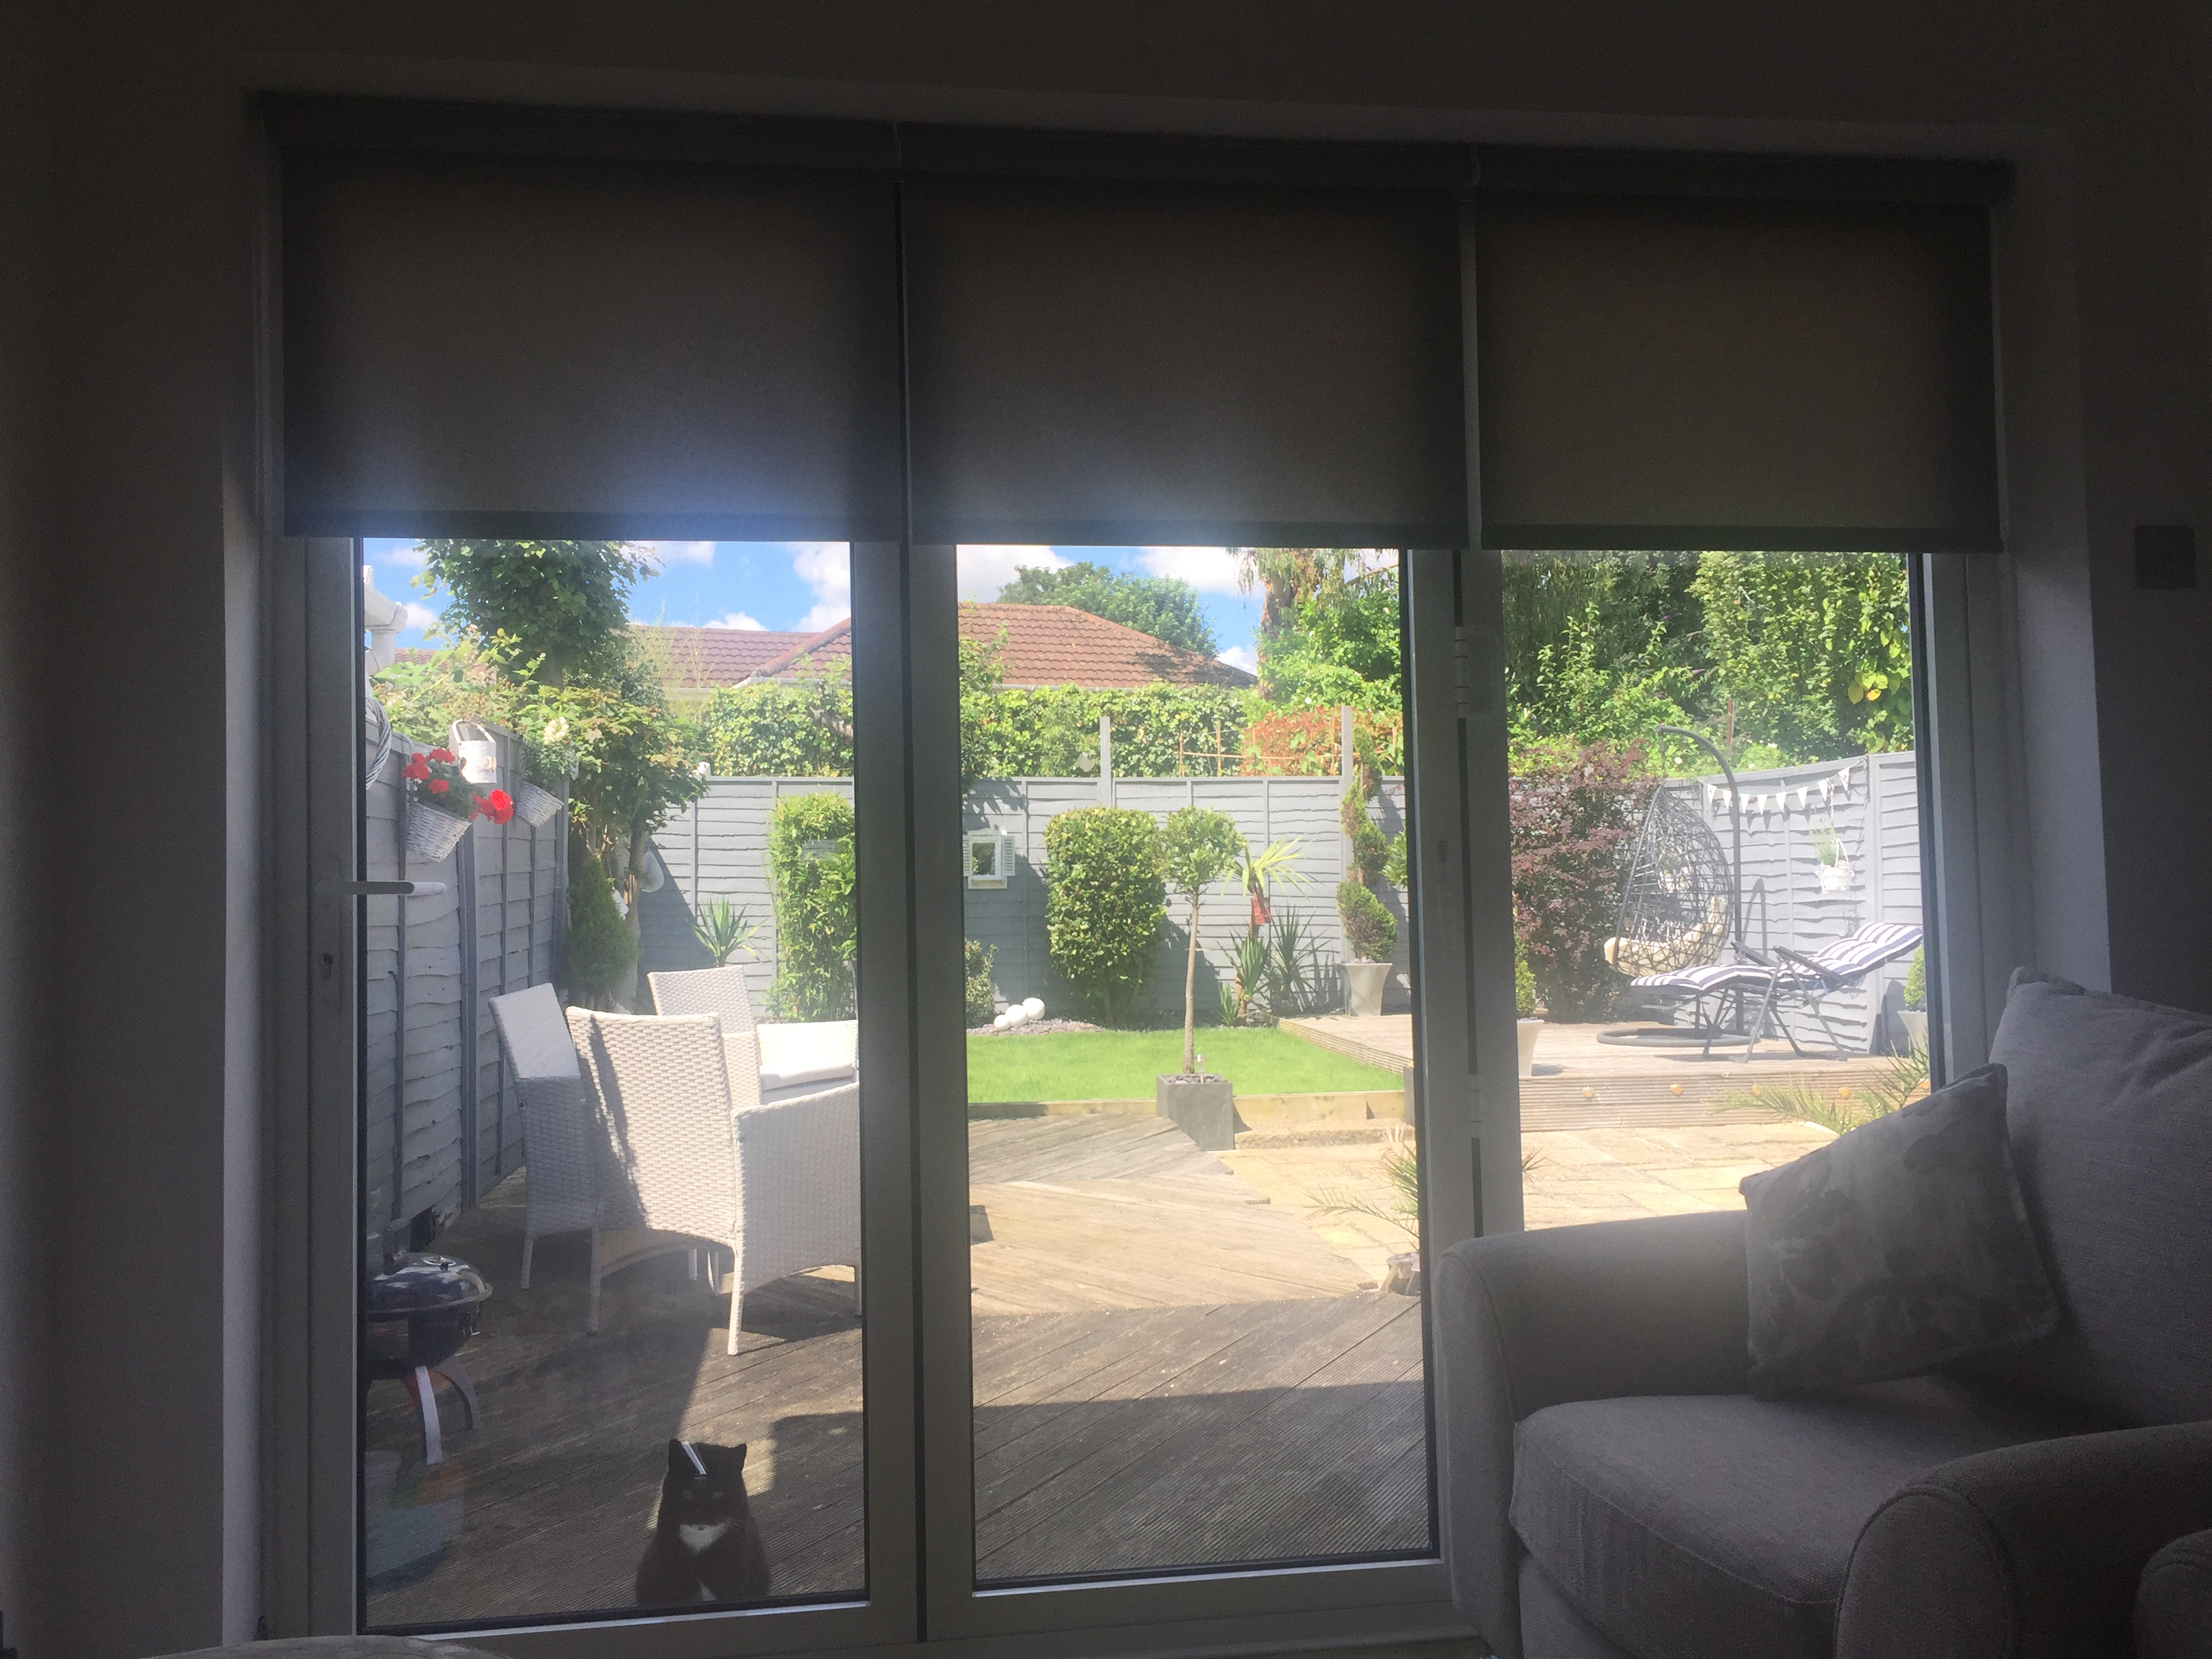 shade navy your motive roller effective matchstick sofa grey ds for blackout shades blinds room protection sheer bamboo roman living bedroom down up brown curtain lots blind treatments big pull furniture curtains window cushion white